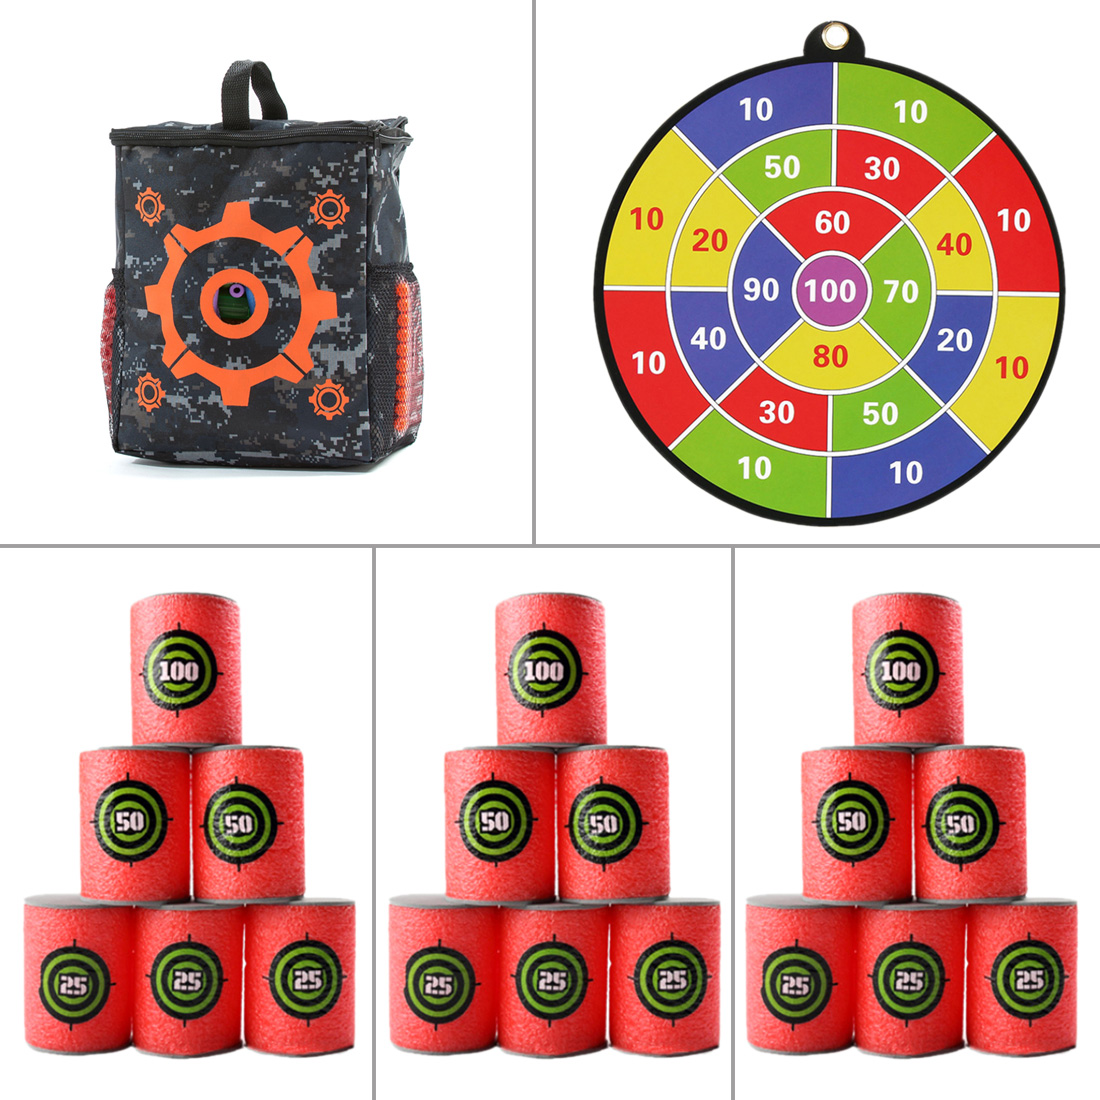 3Pcs Standard Version Soft Bullet Dart Board Target Can Target Bag Kit For Nerf Shooting Tactical Target Paintball Accessories